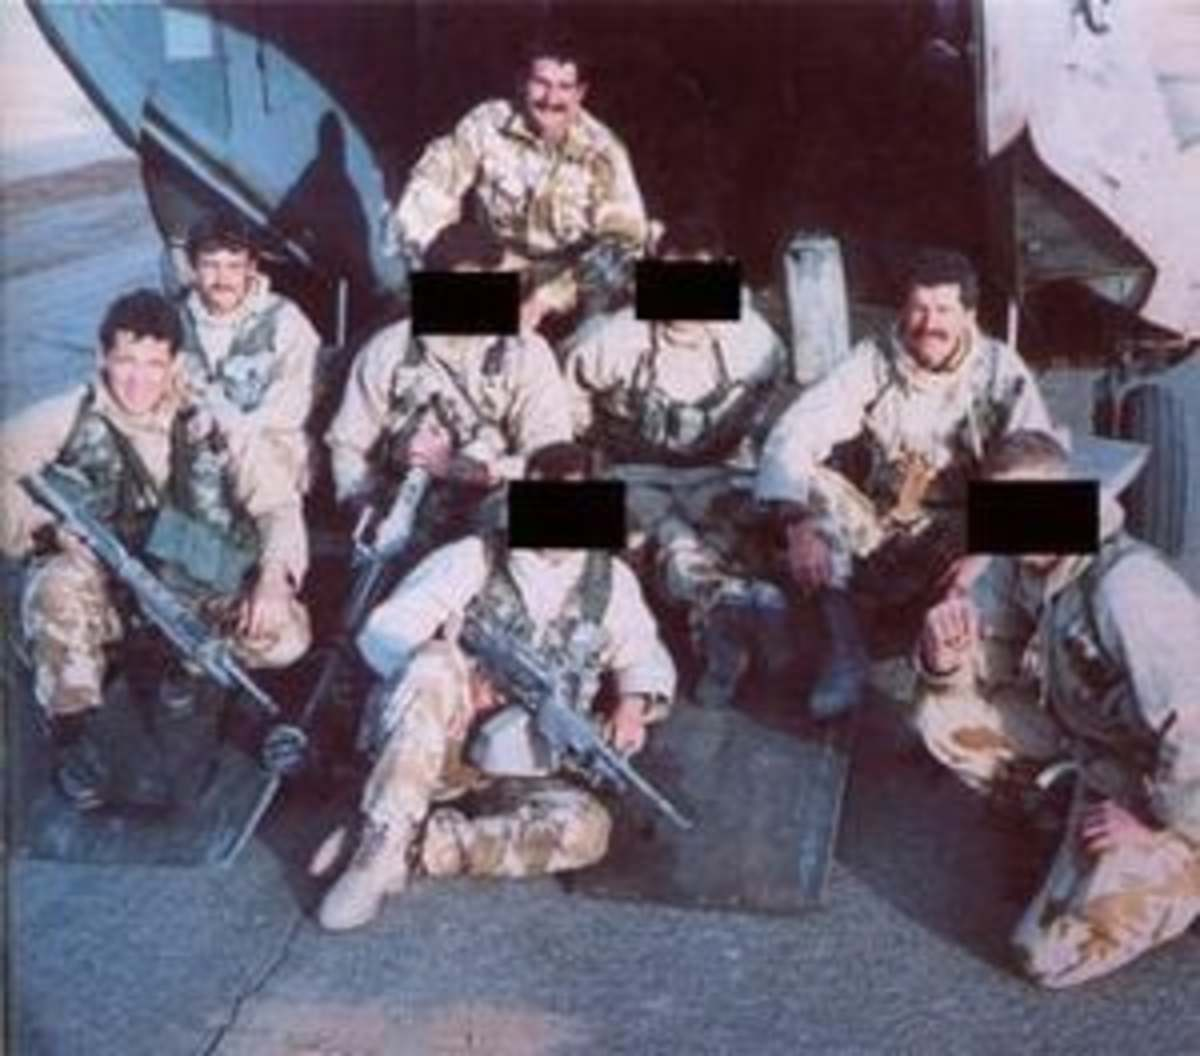 A  real SAS Patrol that was the most decorated SAS Patrol ever. From the book 'Bravo two zero'